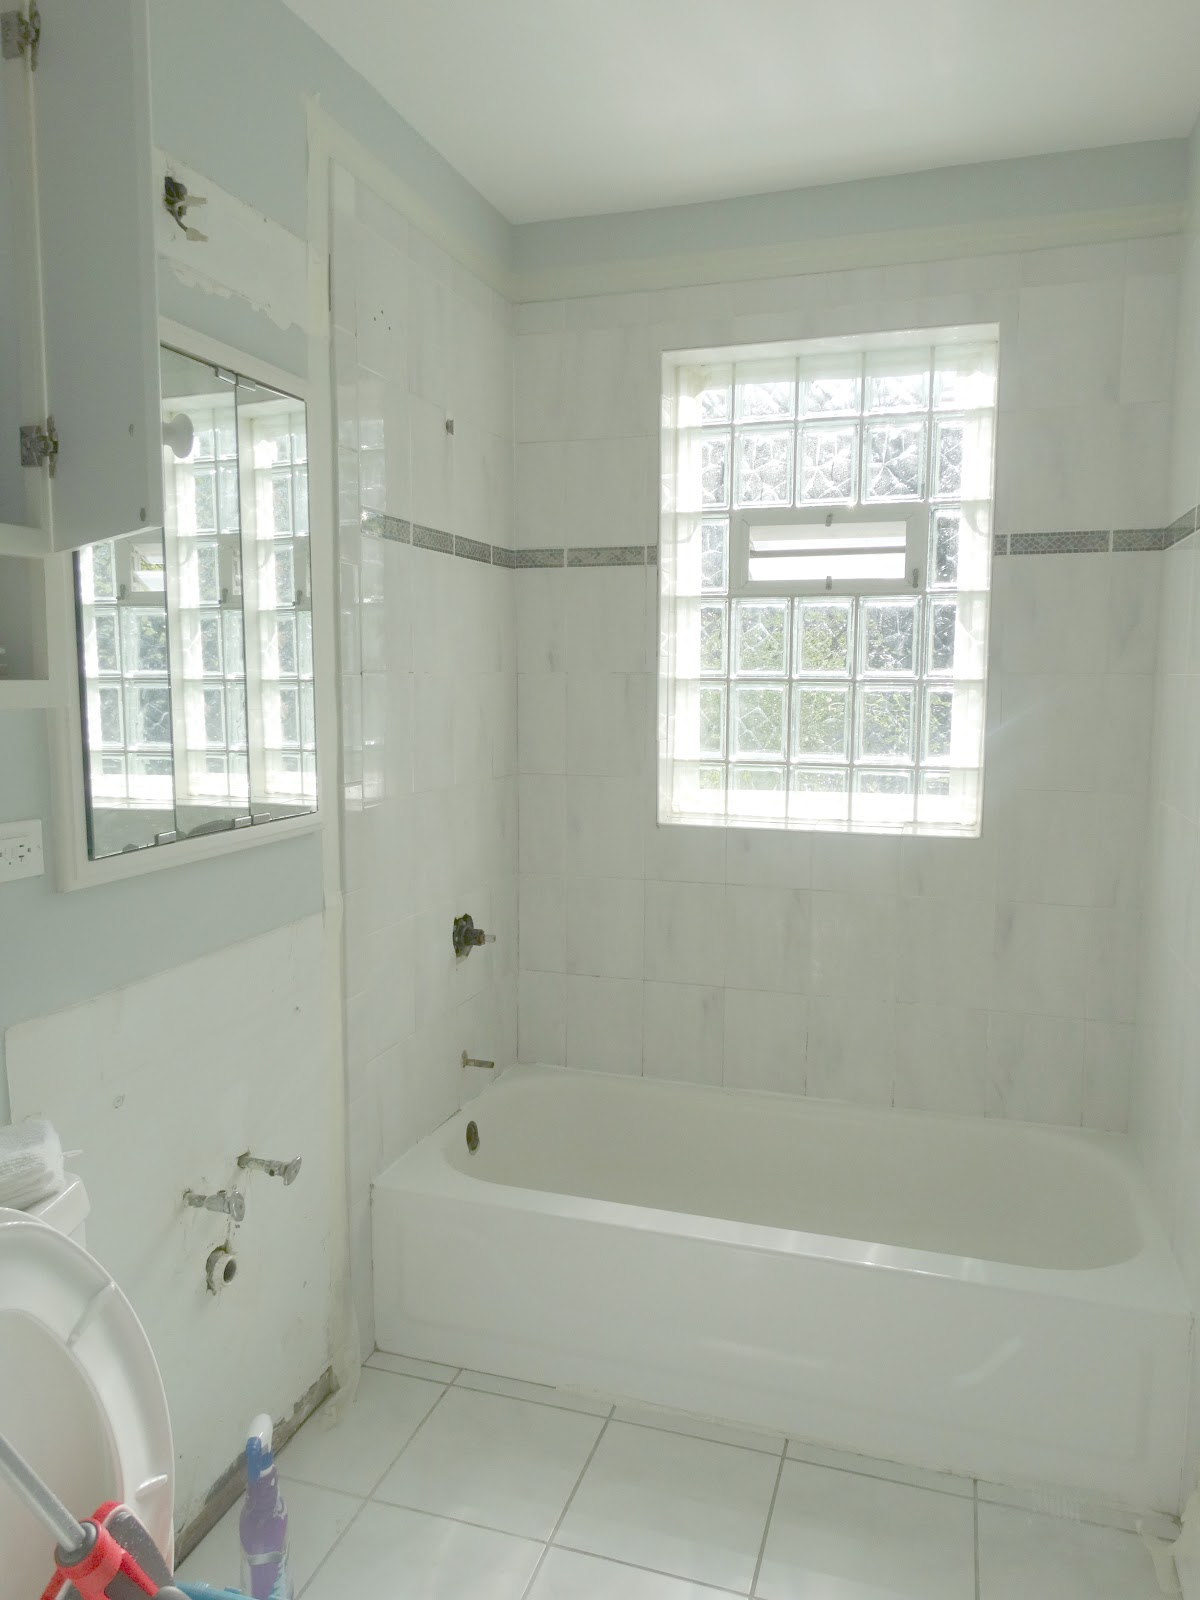 1950 bathroom remodel - Here Is Our 1950 S Bathroom In The New House Love The Cast Iron Tub And Glass Block Window Gives Some Character To This Bathroom